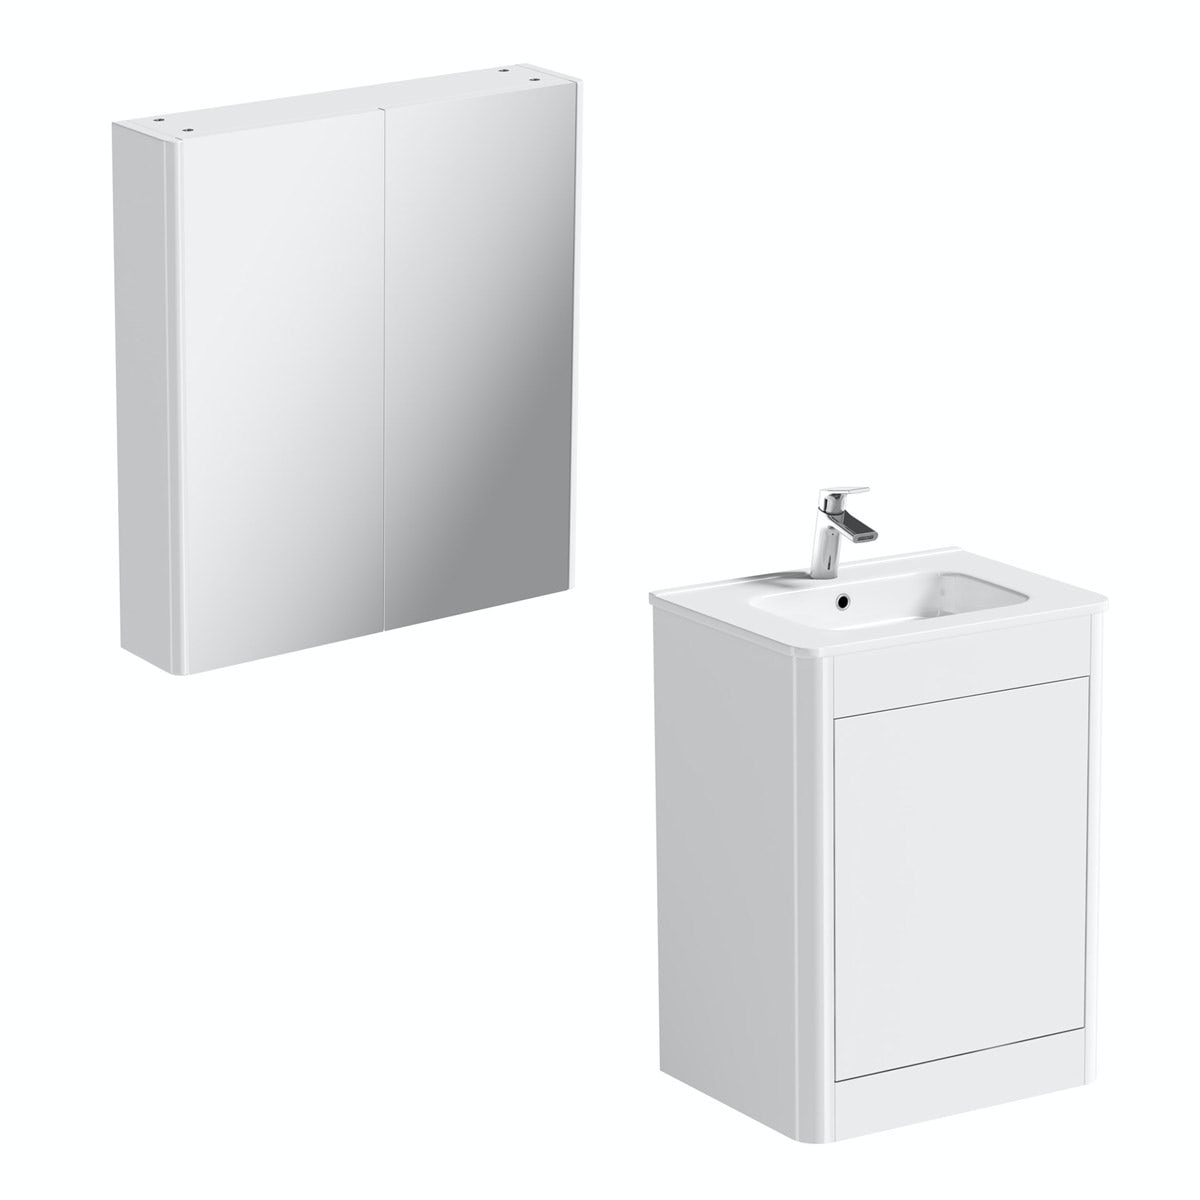 Mode Carter ice white vanity unit 600mm and mirror